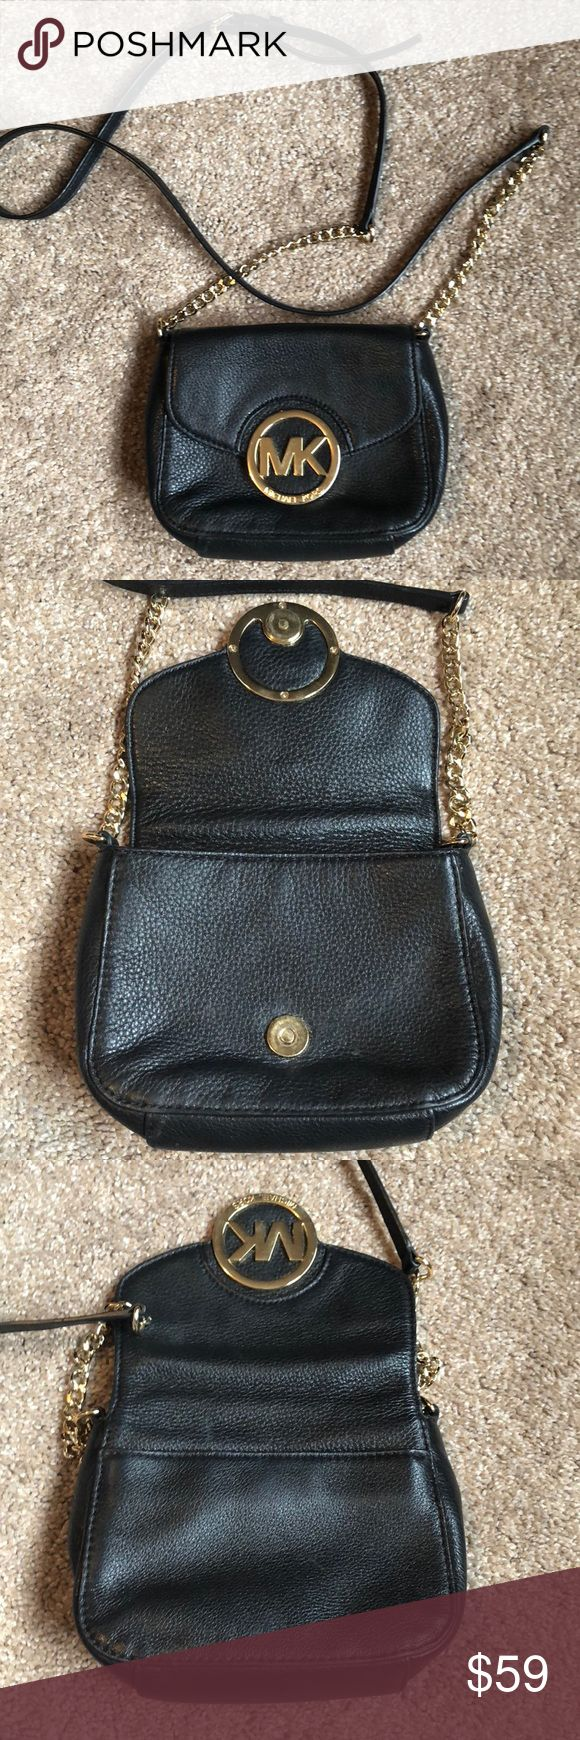 Micheal Kors Crossbody Great condition Michael Kors crossbody purse. Leather has been conditioned and kept in great shape. Michael Kors Bags Crossbody Bags